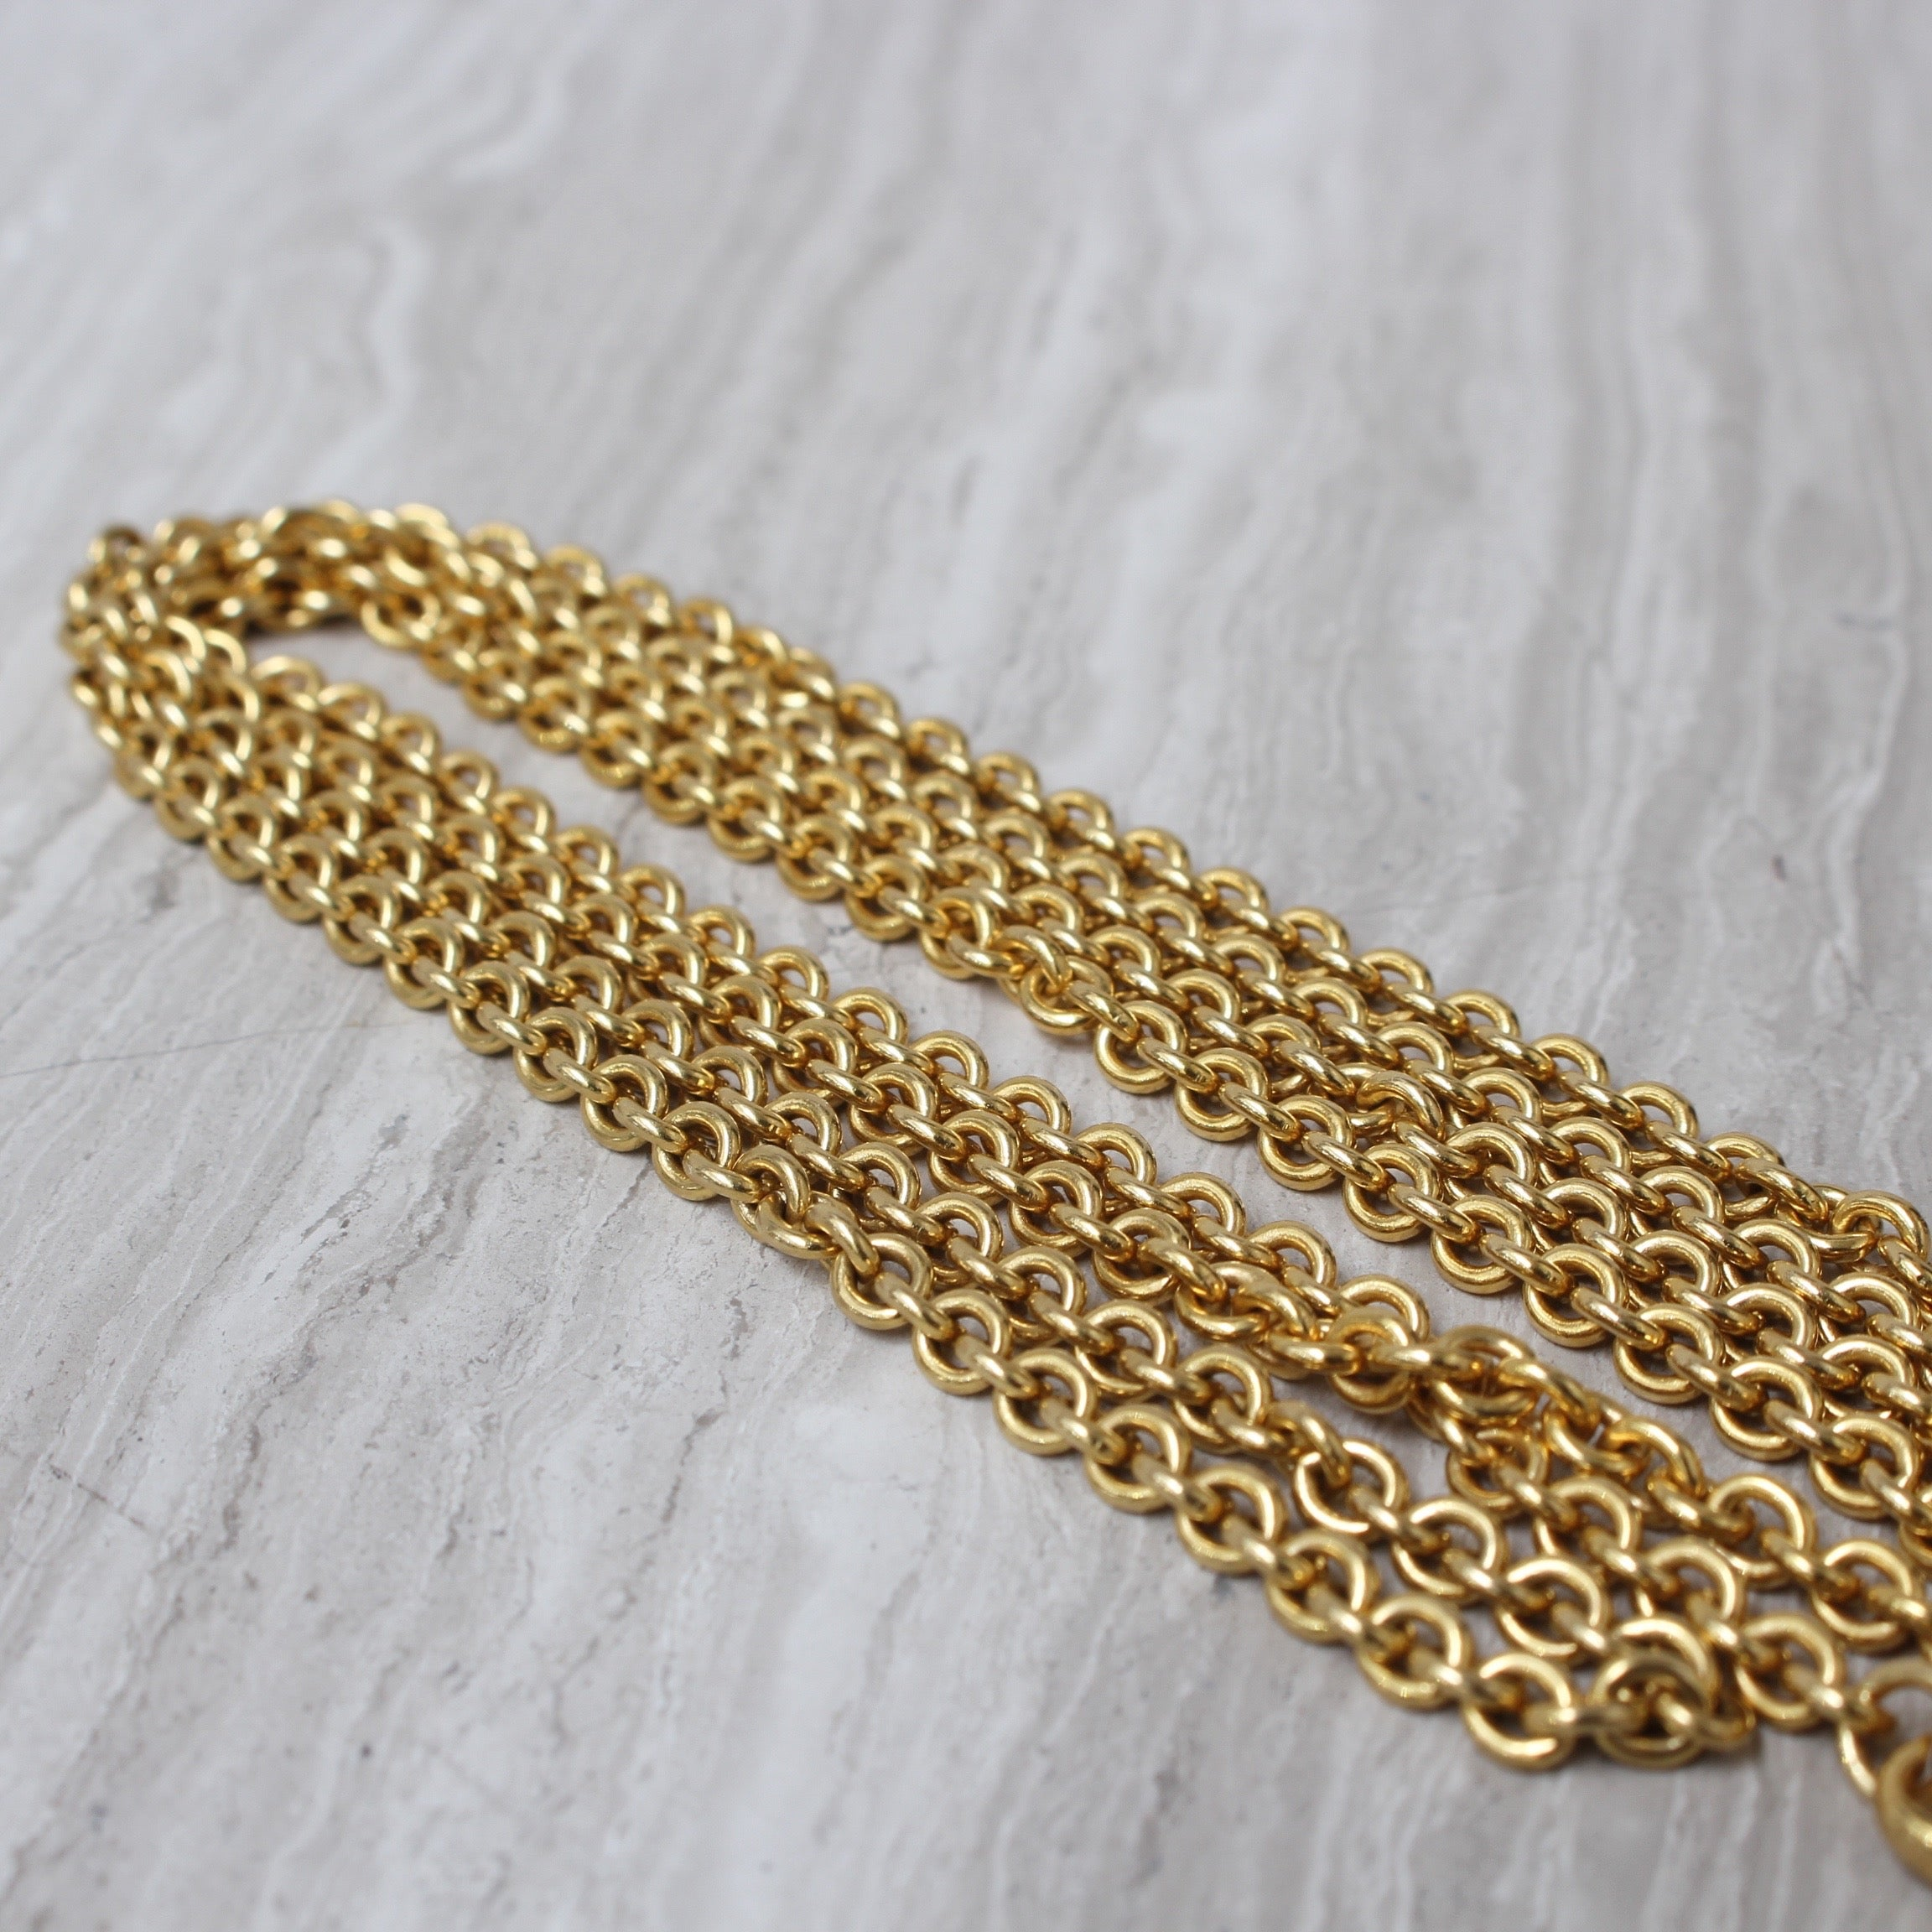 18-Carat Gold Necklace by Stephen Webster (Circa 2000)